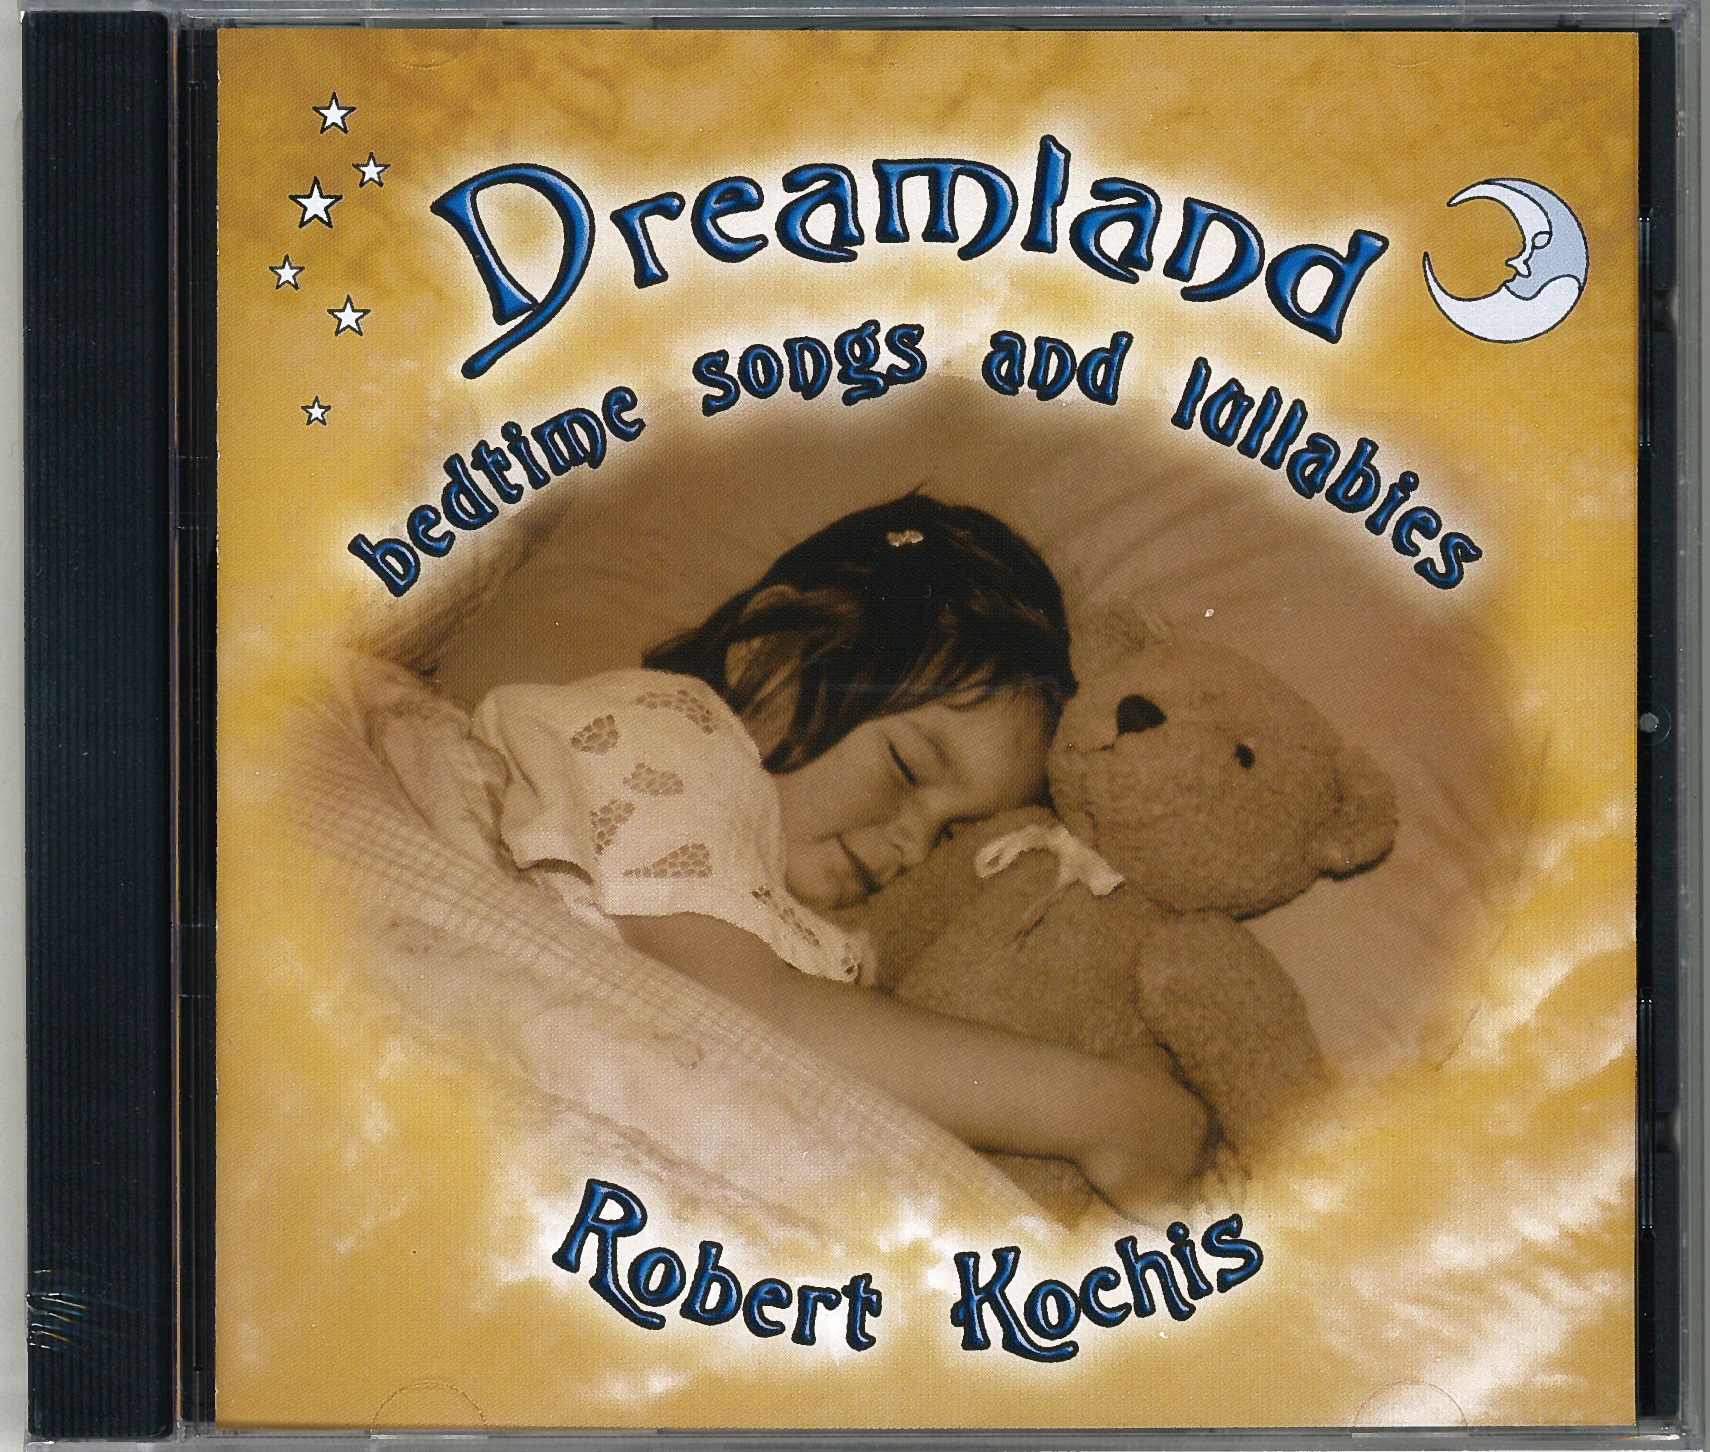 Dreamland by Robert Kochis 88-5911011032